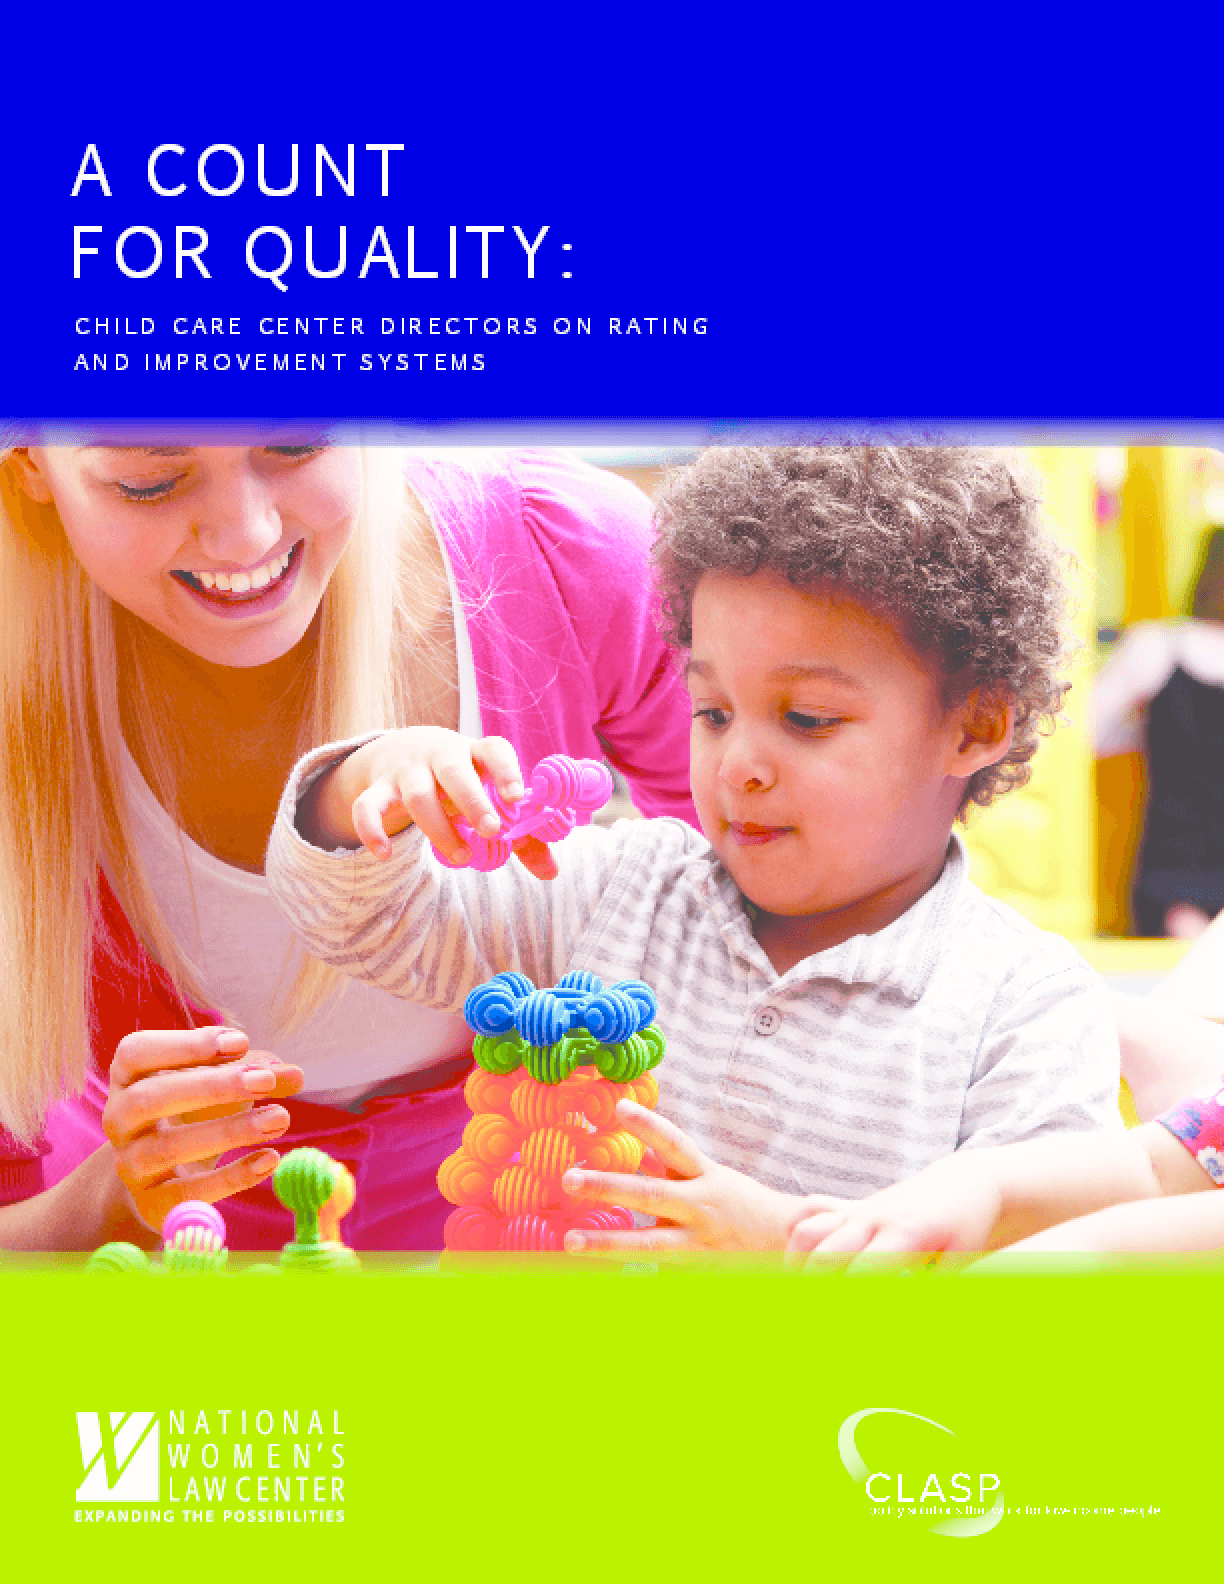 A Count for Quality: Child Care Center Directors on Rating and Improvement Systems